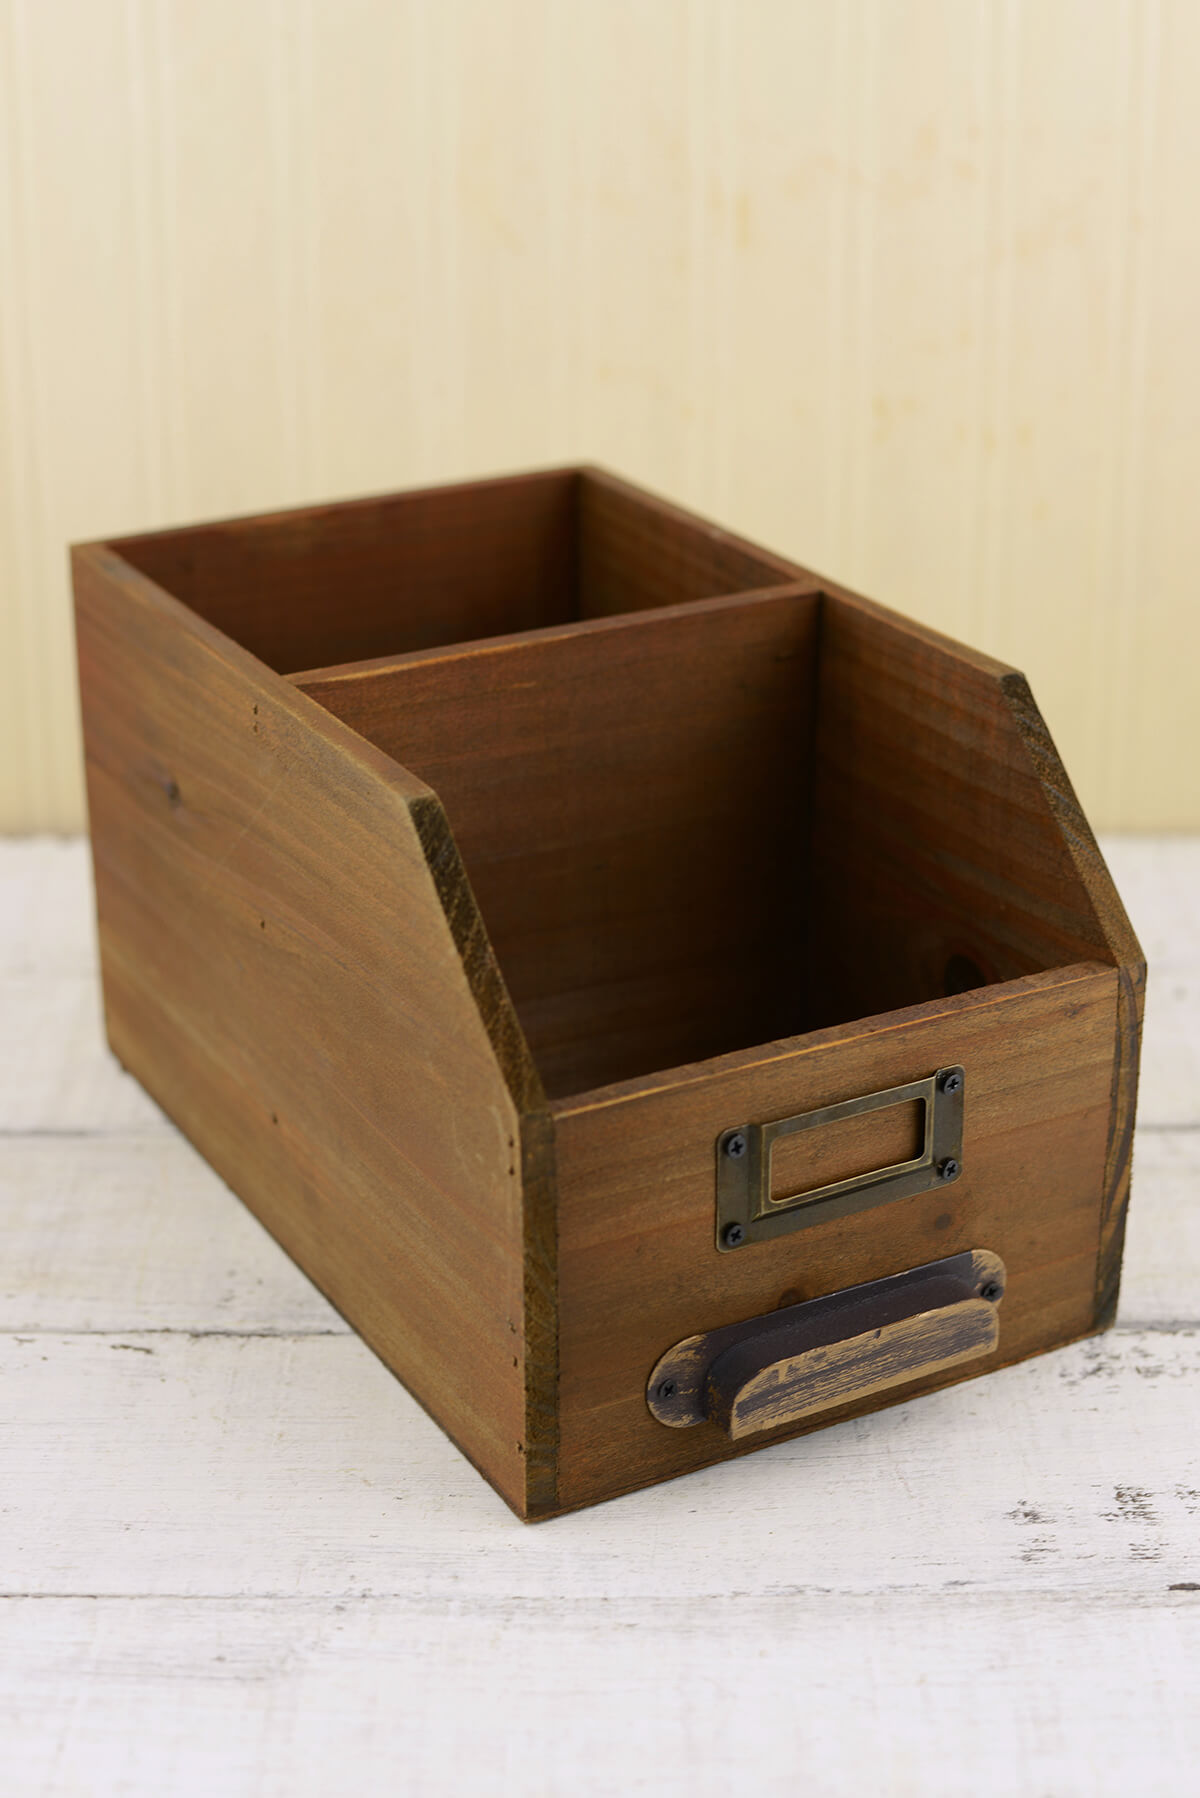 Wood Desk Organizer 10in